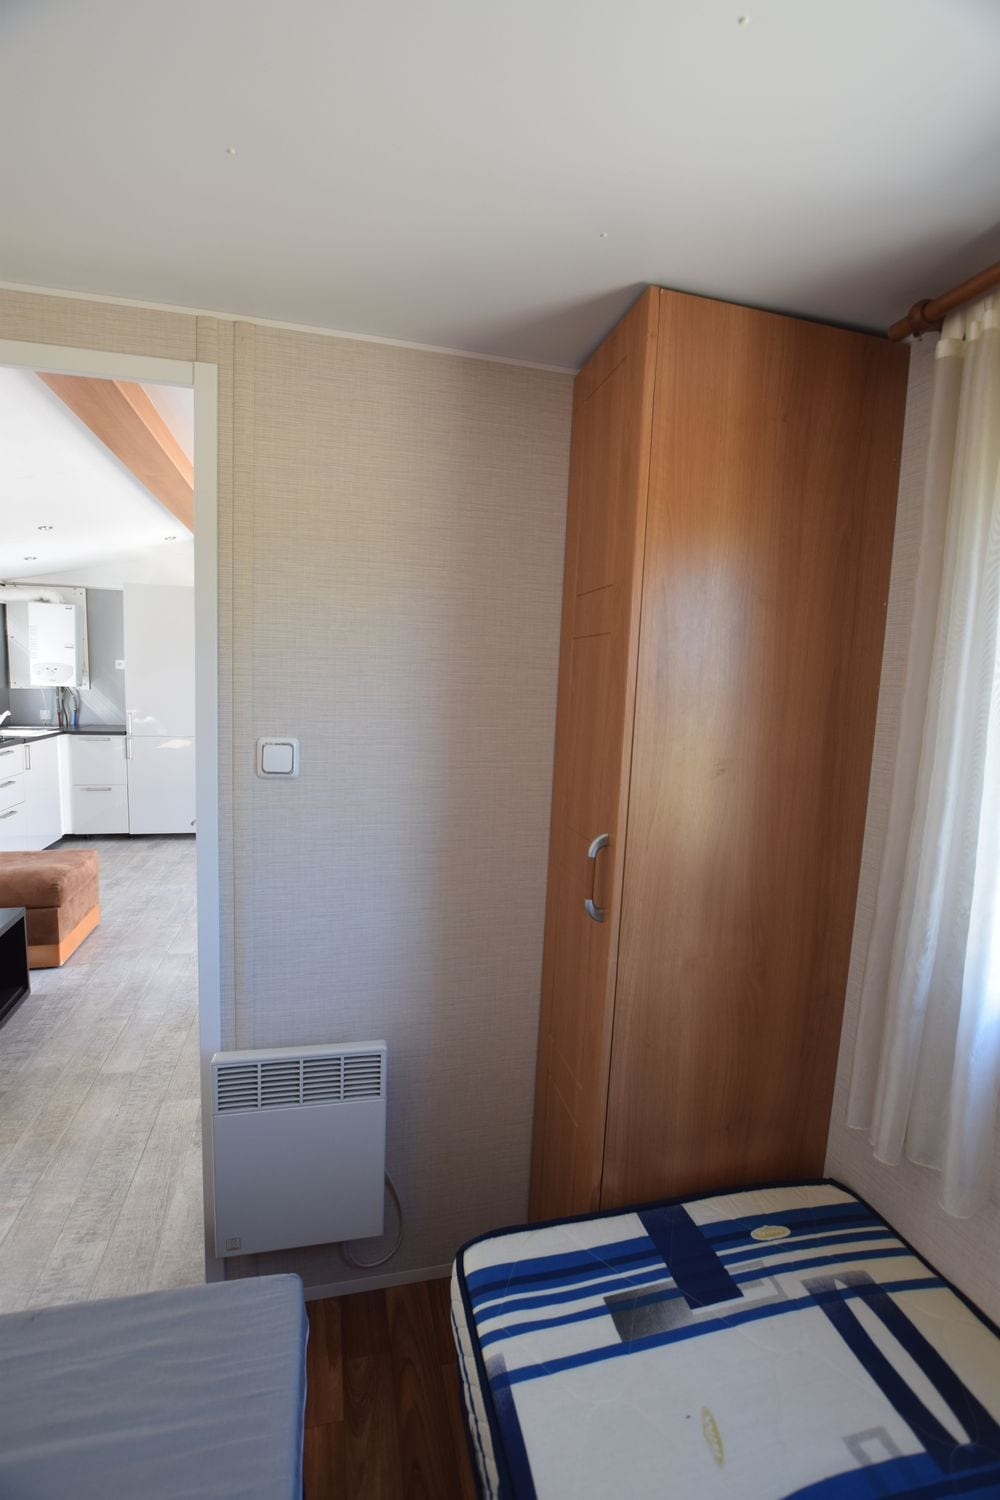 Irm Topaze - 2007 - Mobil home d'occasion - 12 500€ - Zen Mobil homes